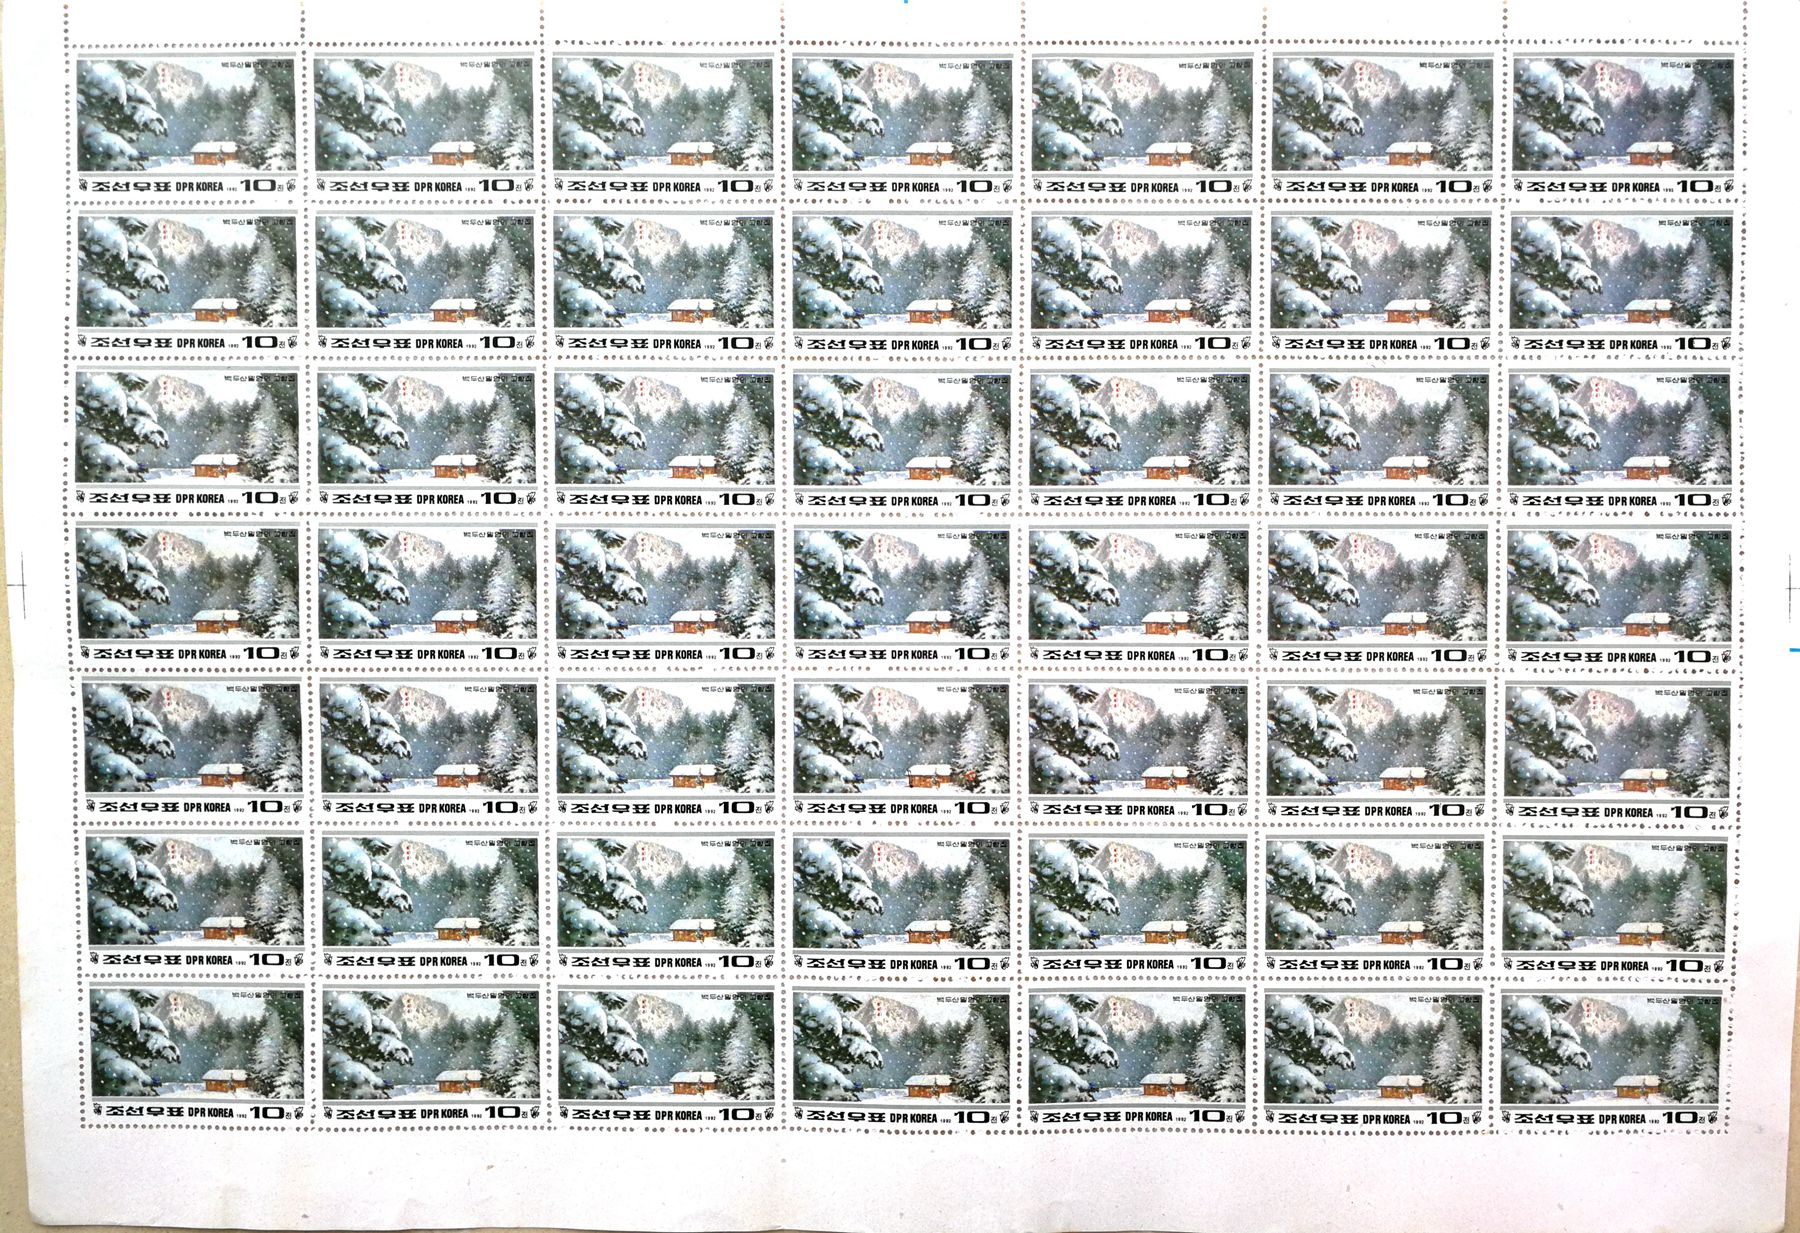 L4420, Korea Birthday of Great Leader Kim, Full Sheet of 49 Pcs Stamps, 1992